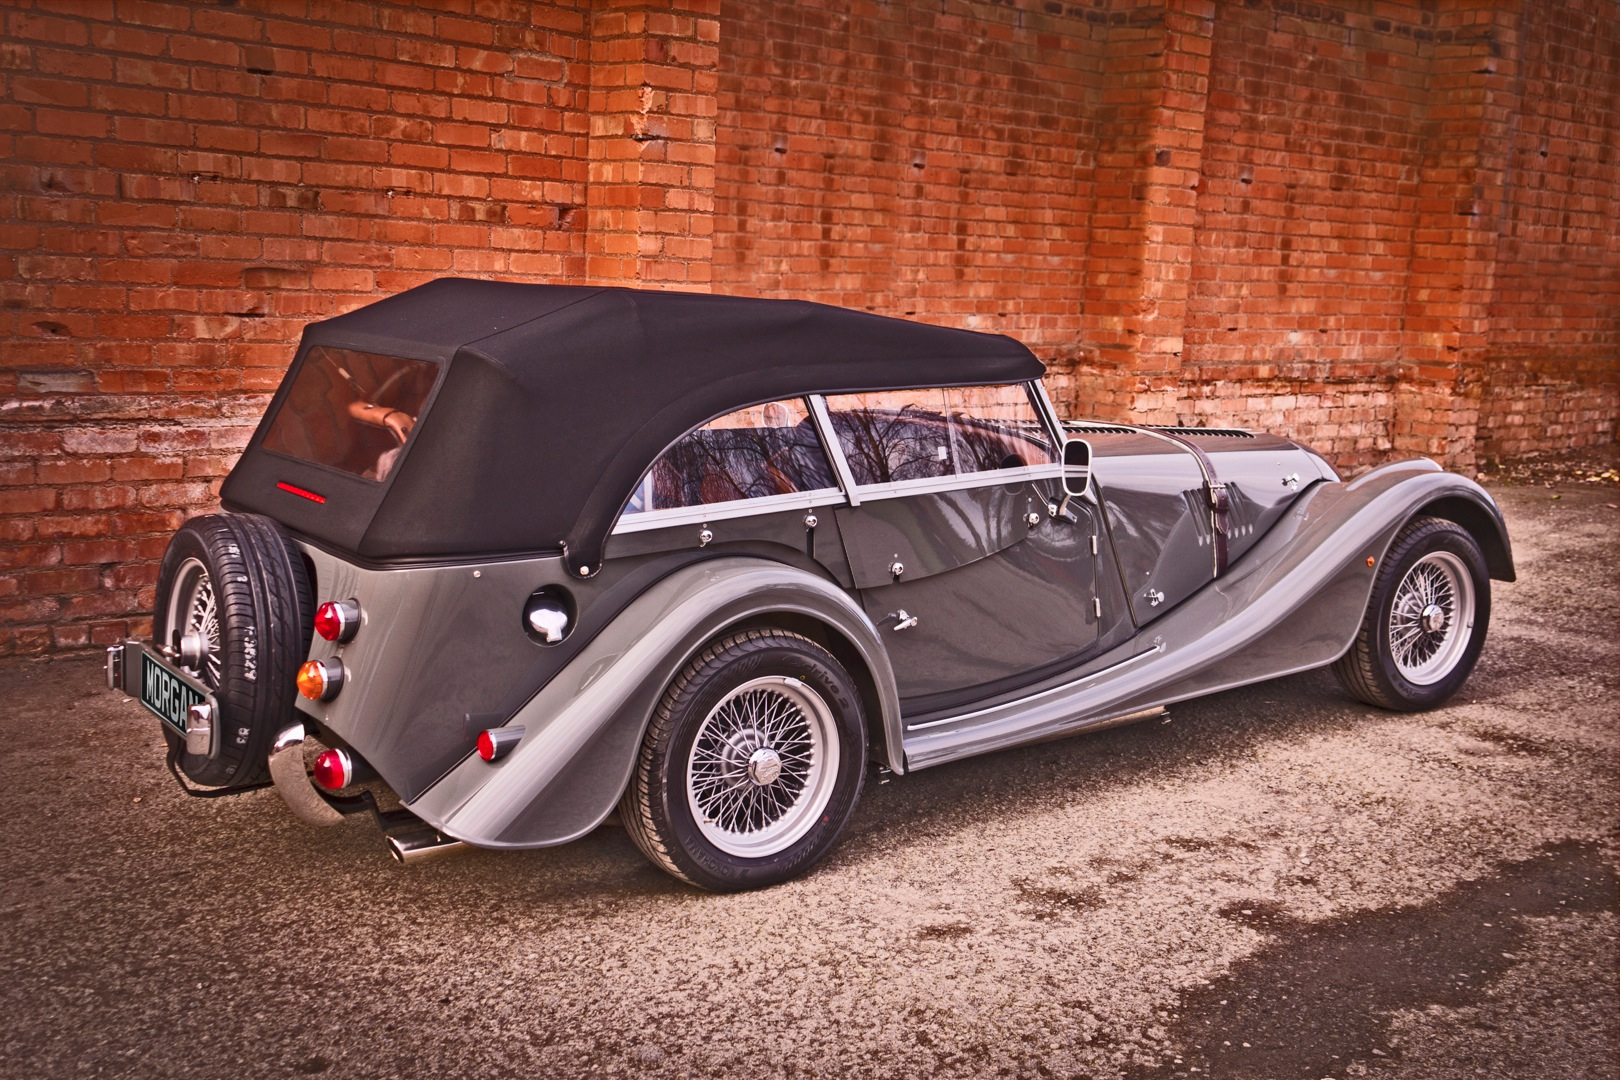 Morgan 4-seater photo - 4